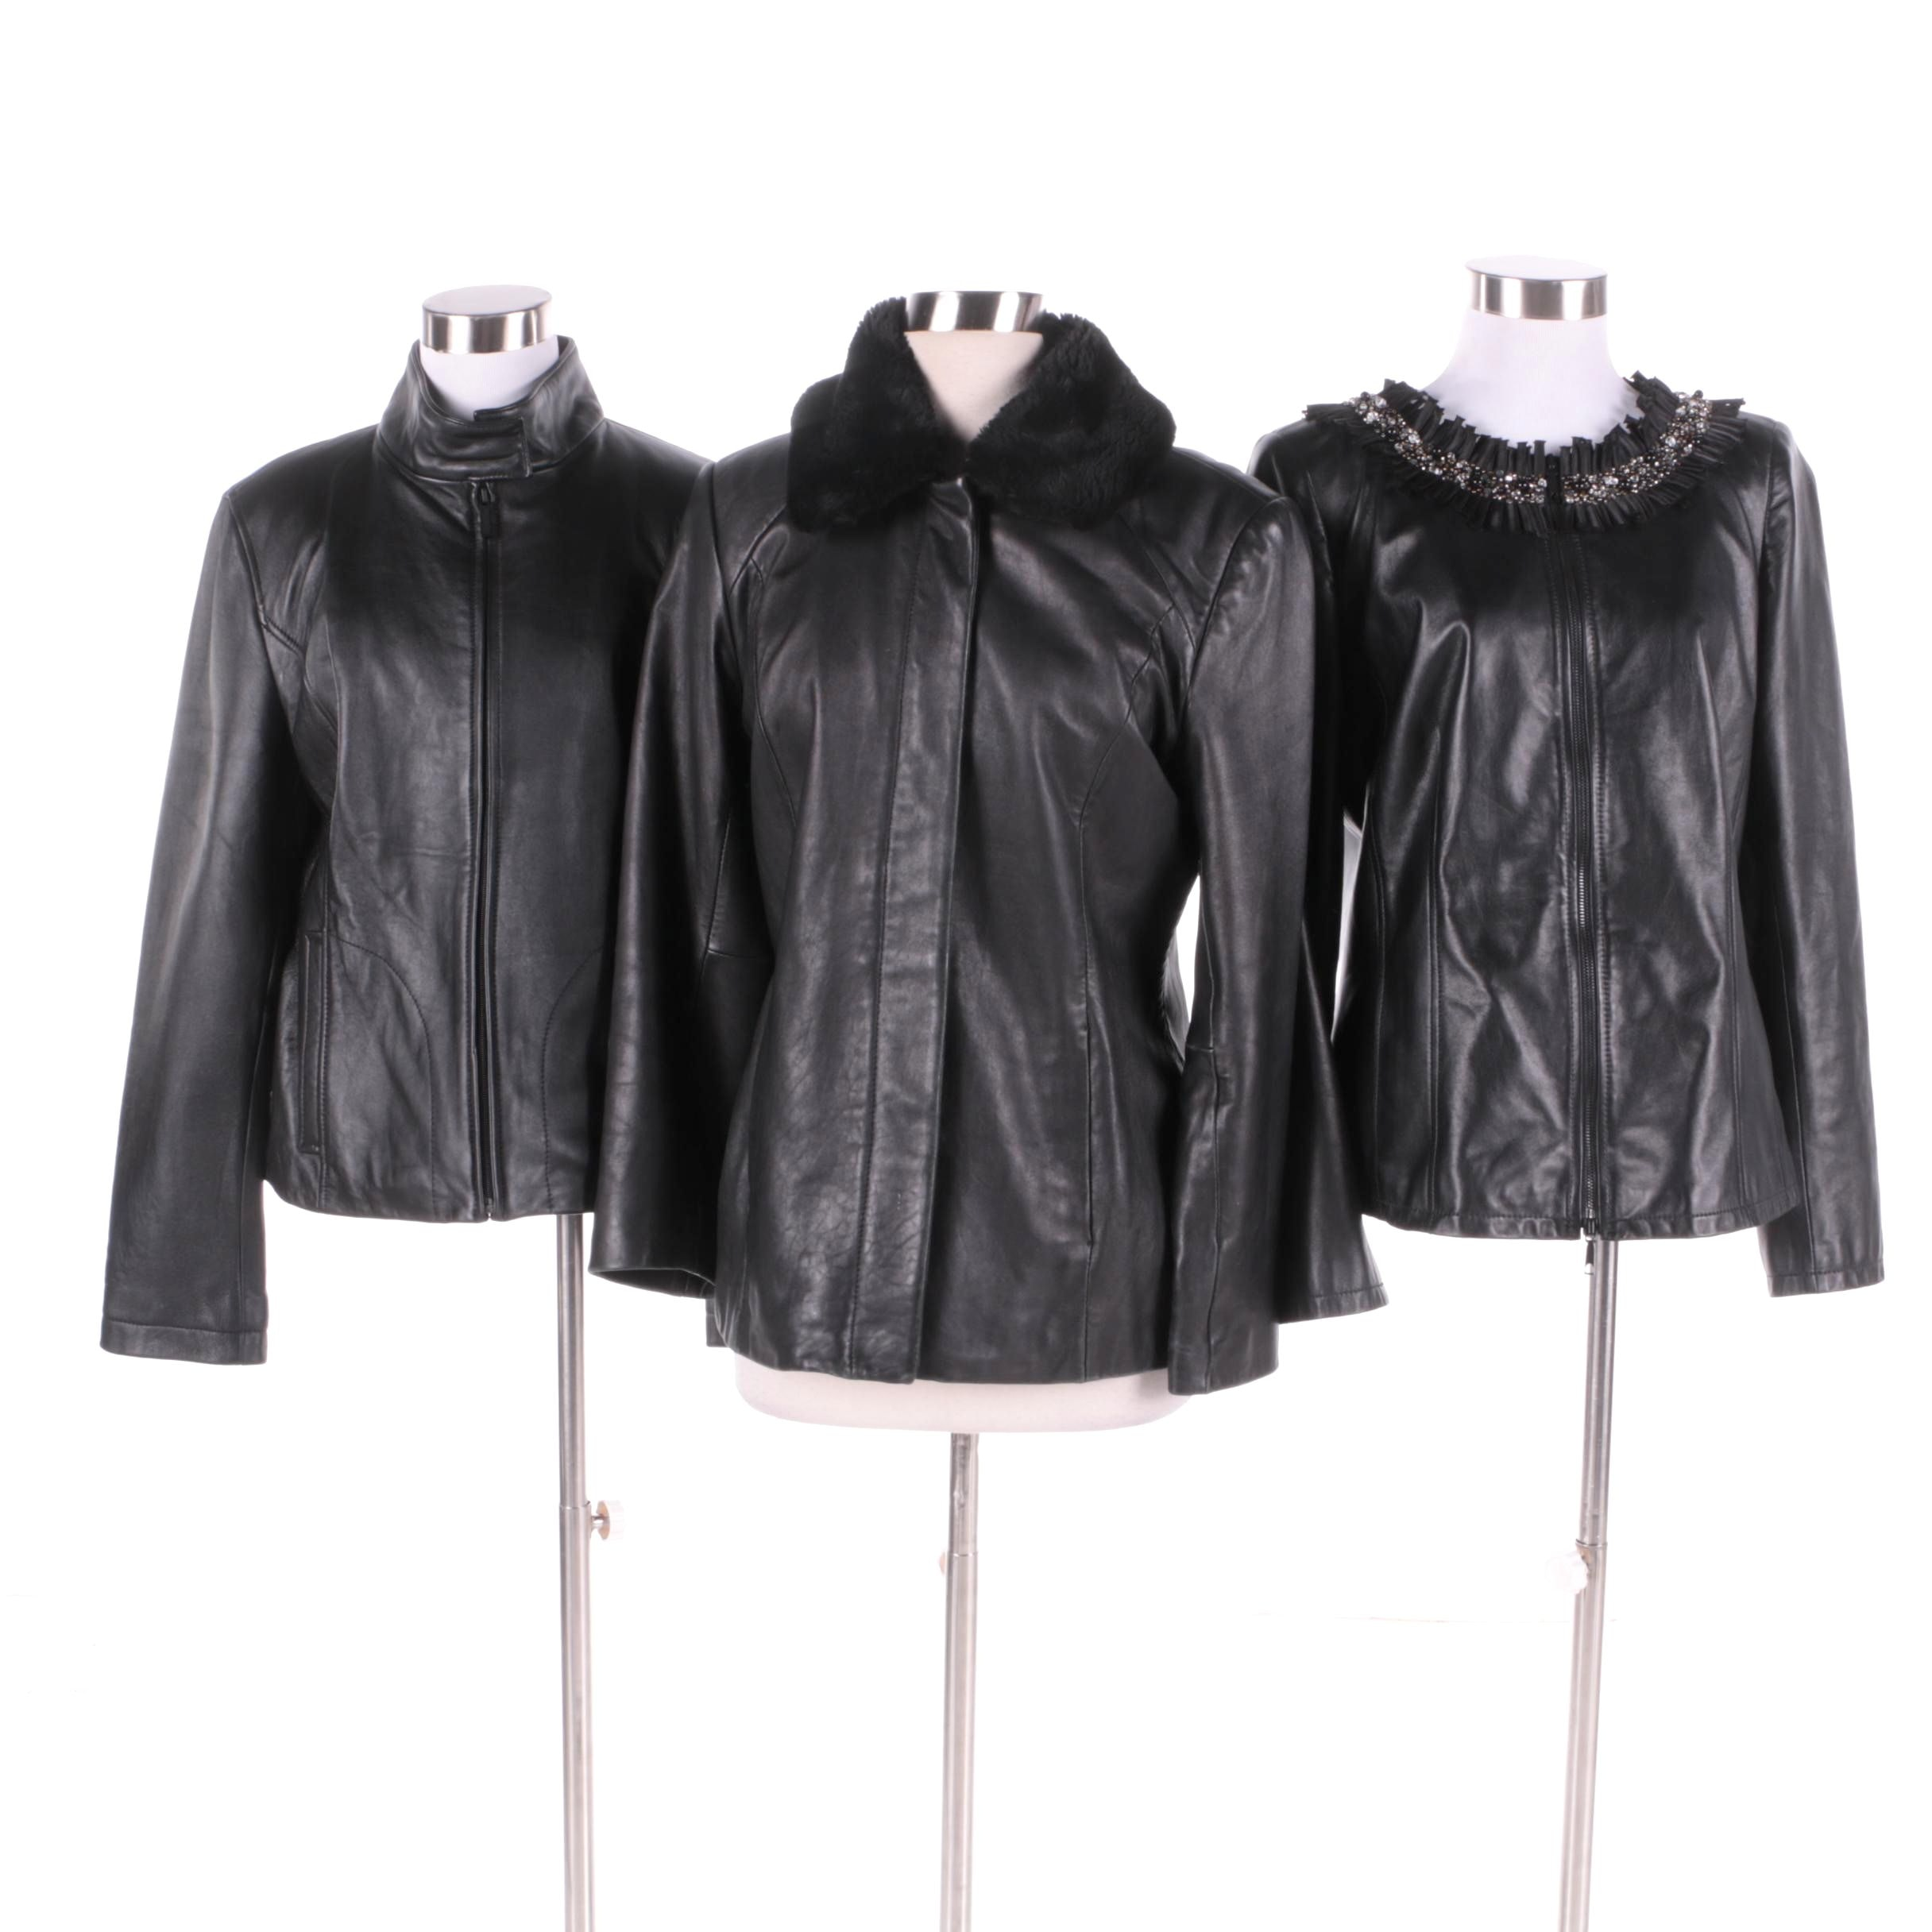 Women's Black Leather Jackets Including Calvin Klein and Lafayette 148